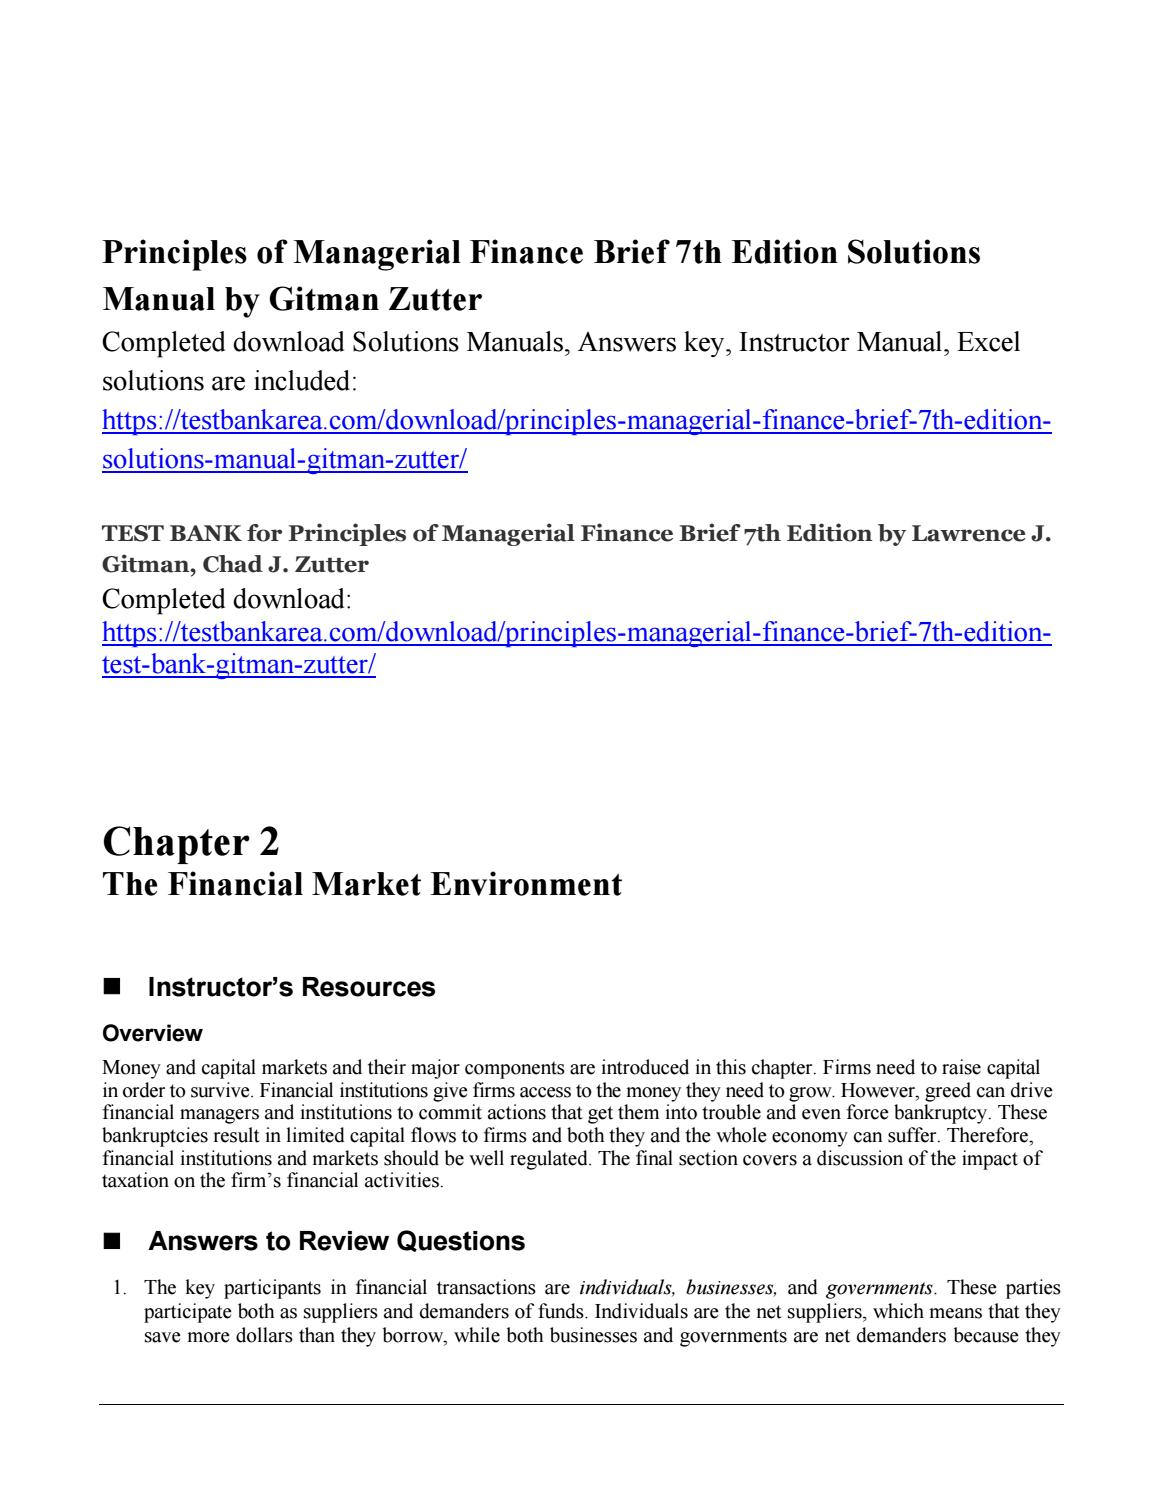 Principles of managerial finance brief 7th edition solutions manual by  gitman zutter by Venkataraman - issuu